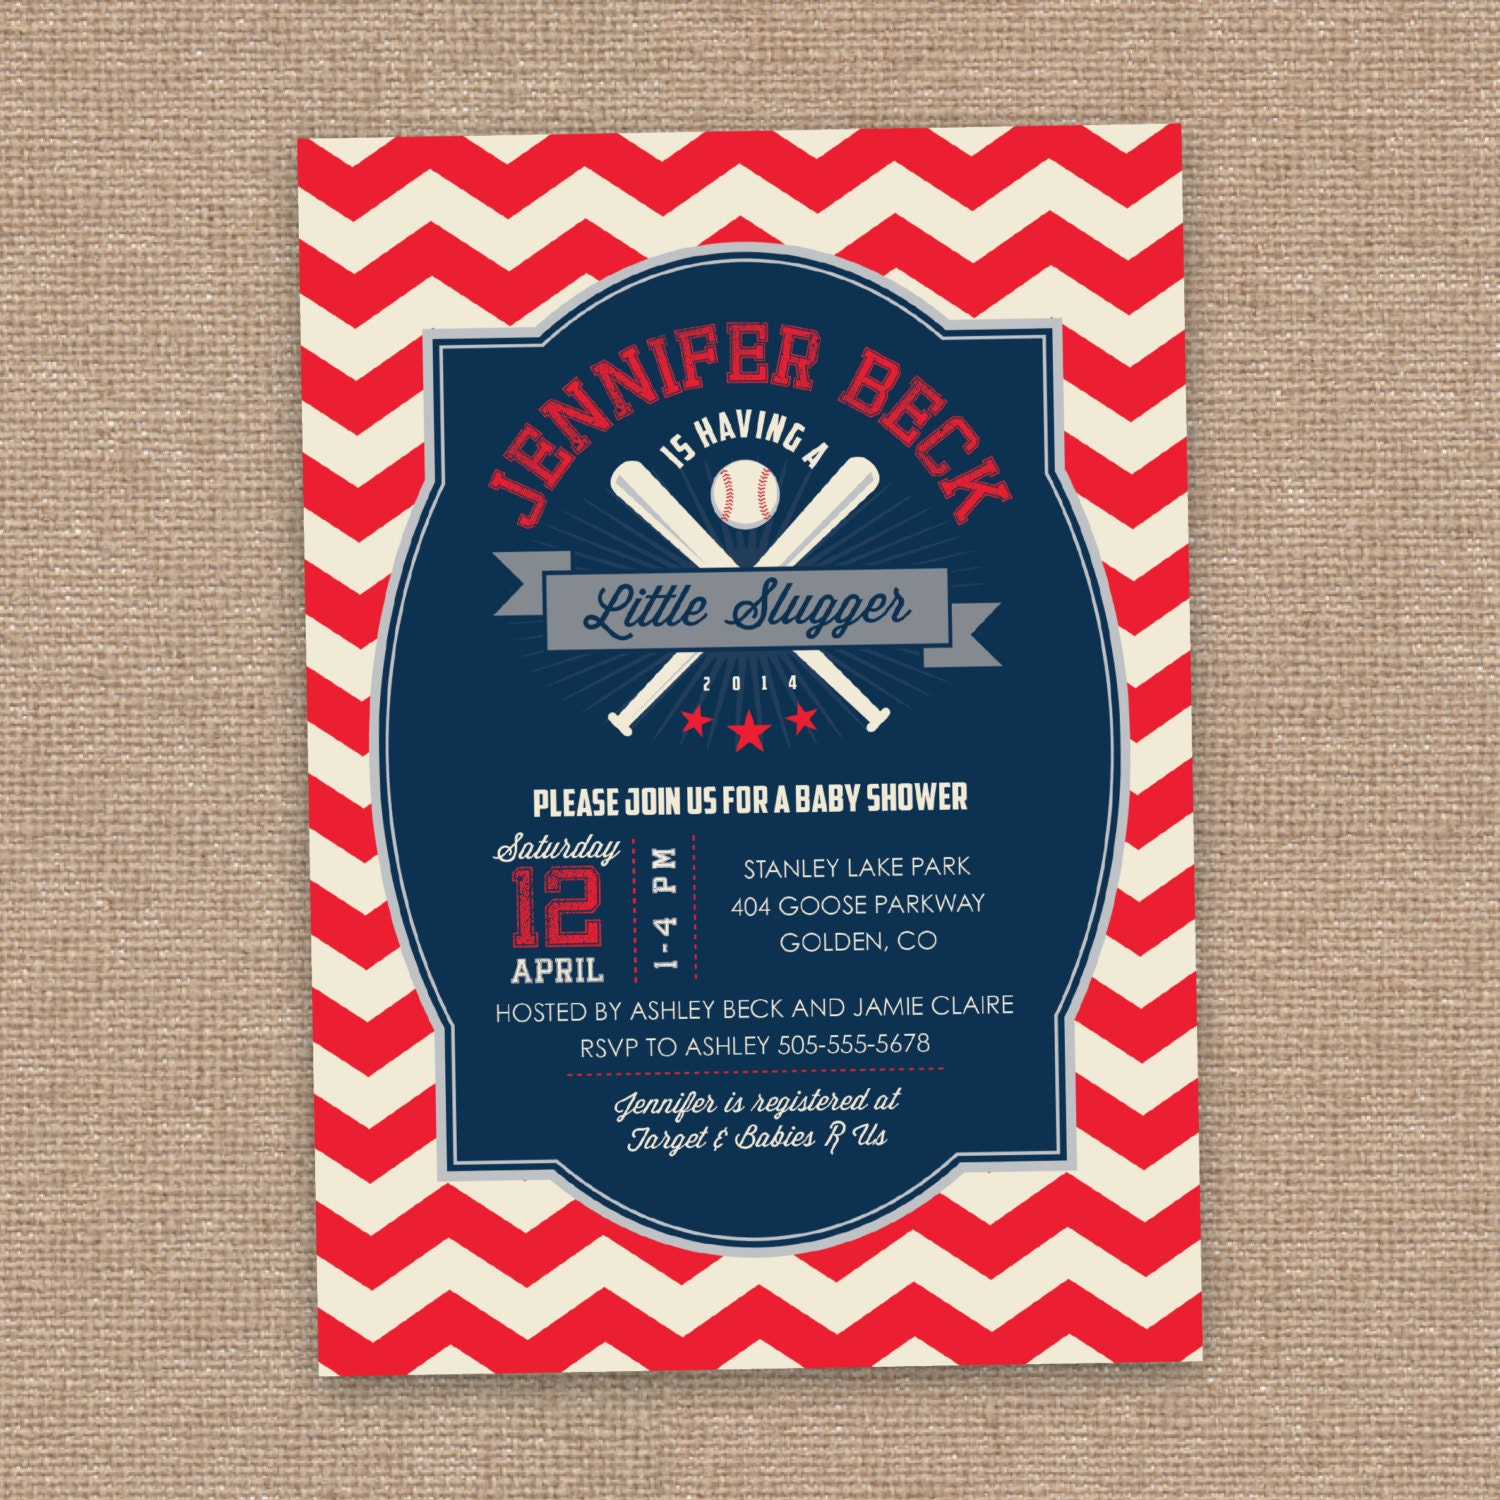 Baseball Baby Shower Invitation Little Slugger By JessicasInvites